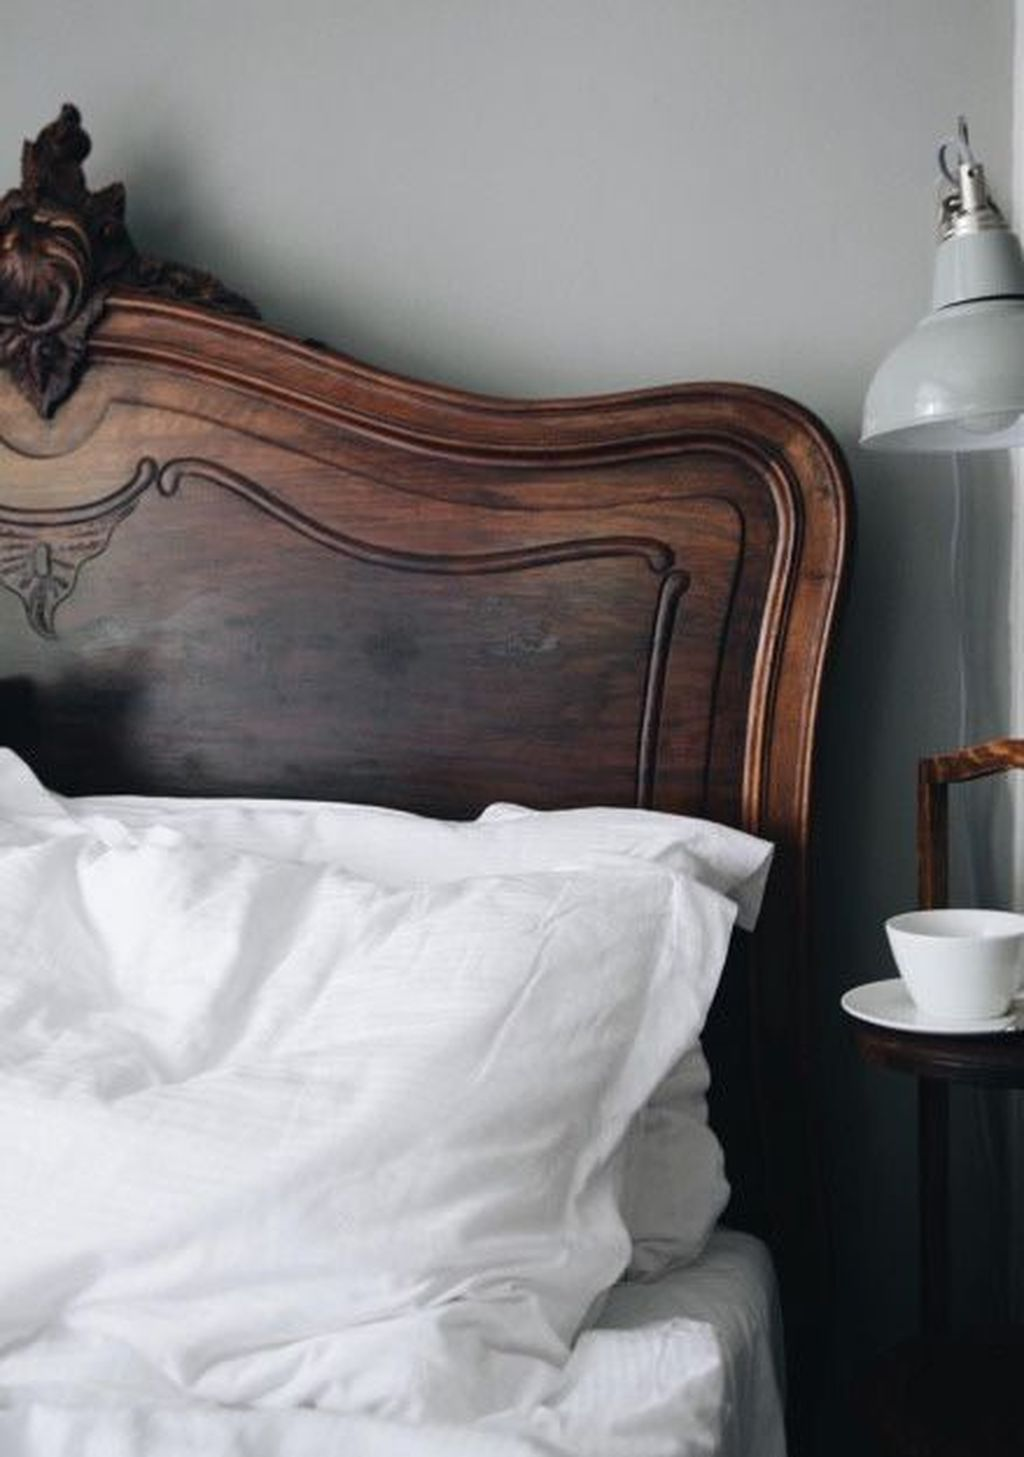 44 Cozy And Vintage Wooden Bed Designs Ideas Homewowdecor In 2020 Wooden Bed Design Wooden Bedroom Furniture Bed Frame And Headboard